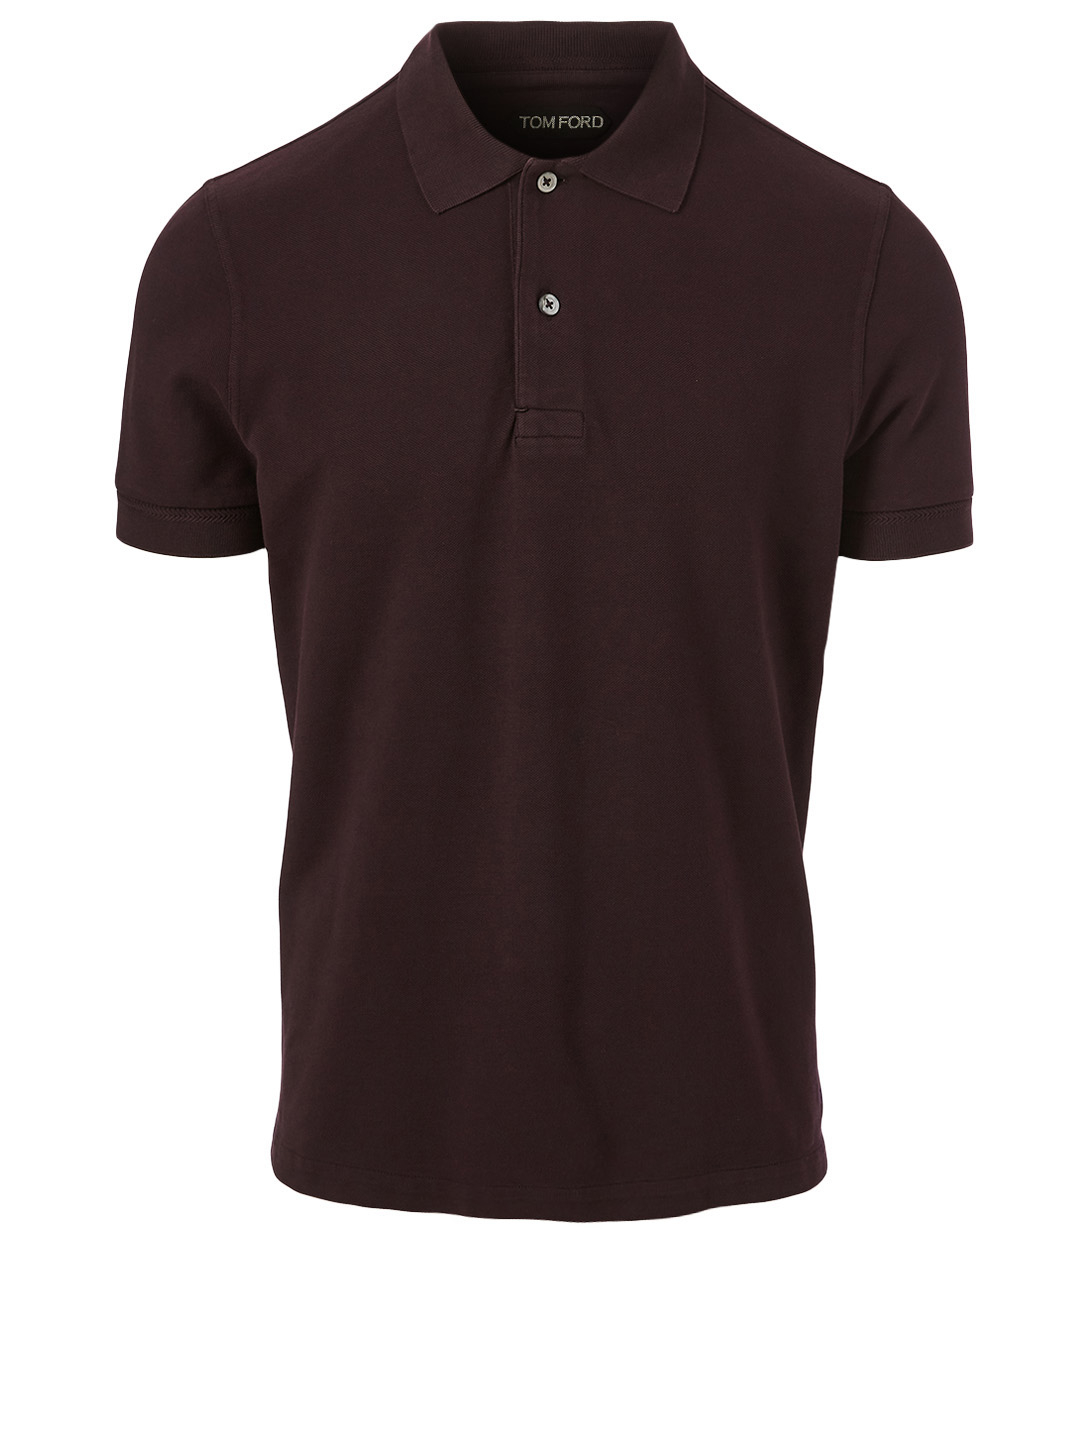 TOM FORD Cotton Short-Sleeve Polo Shirt Men's Red